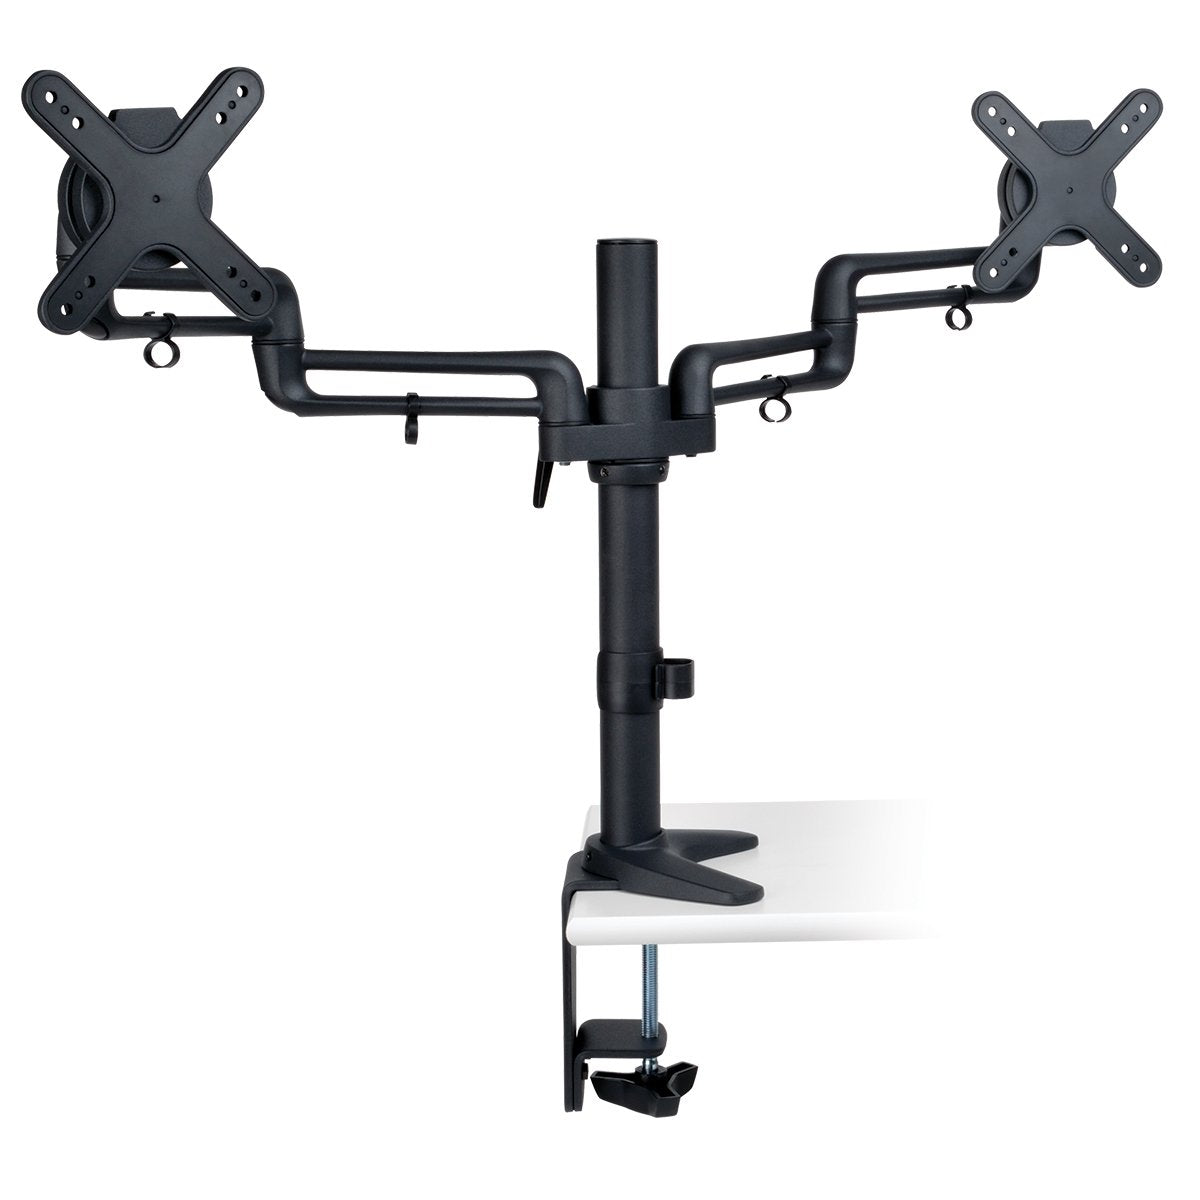 Tripp Lite Dual Full Motion Flexible Arm Desk Clamp for 13